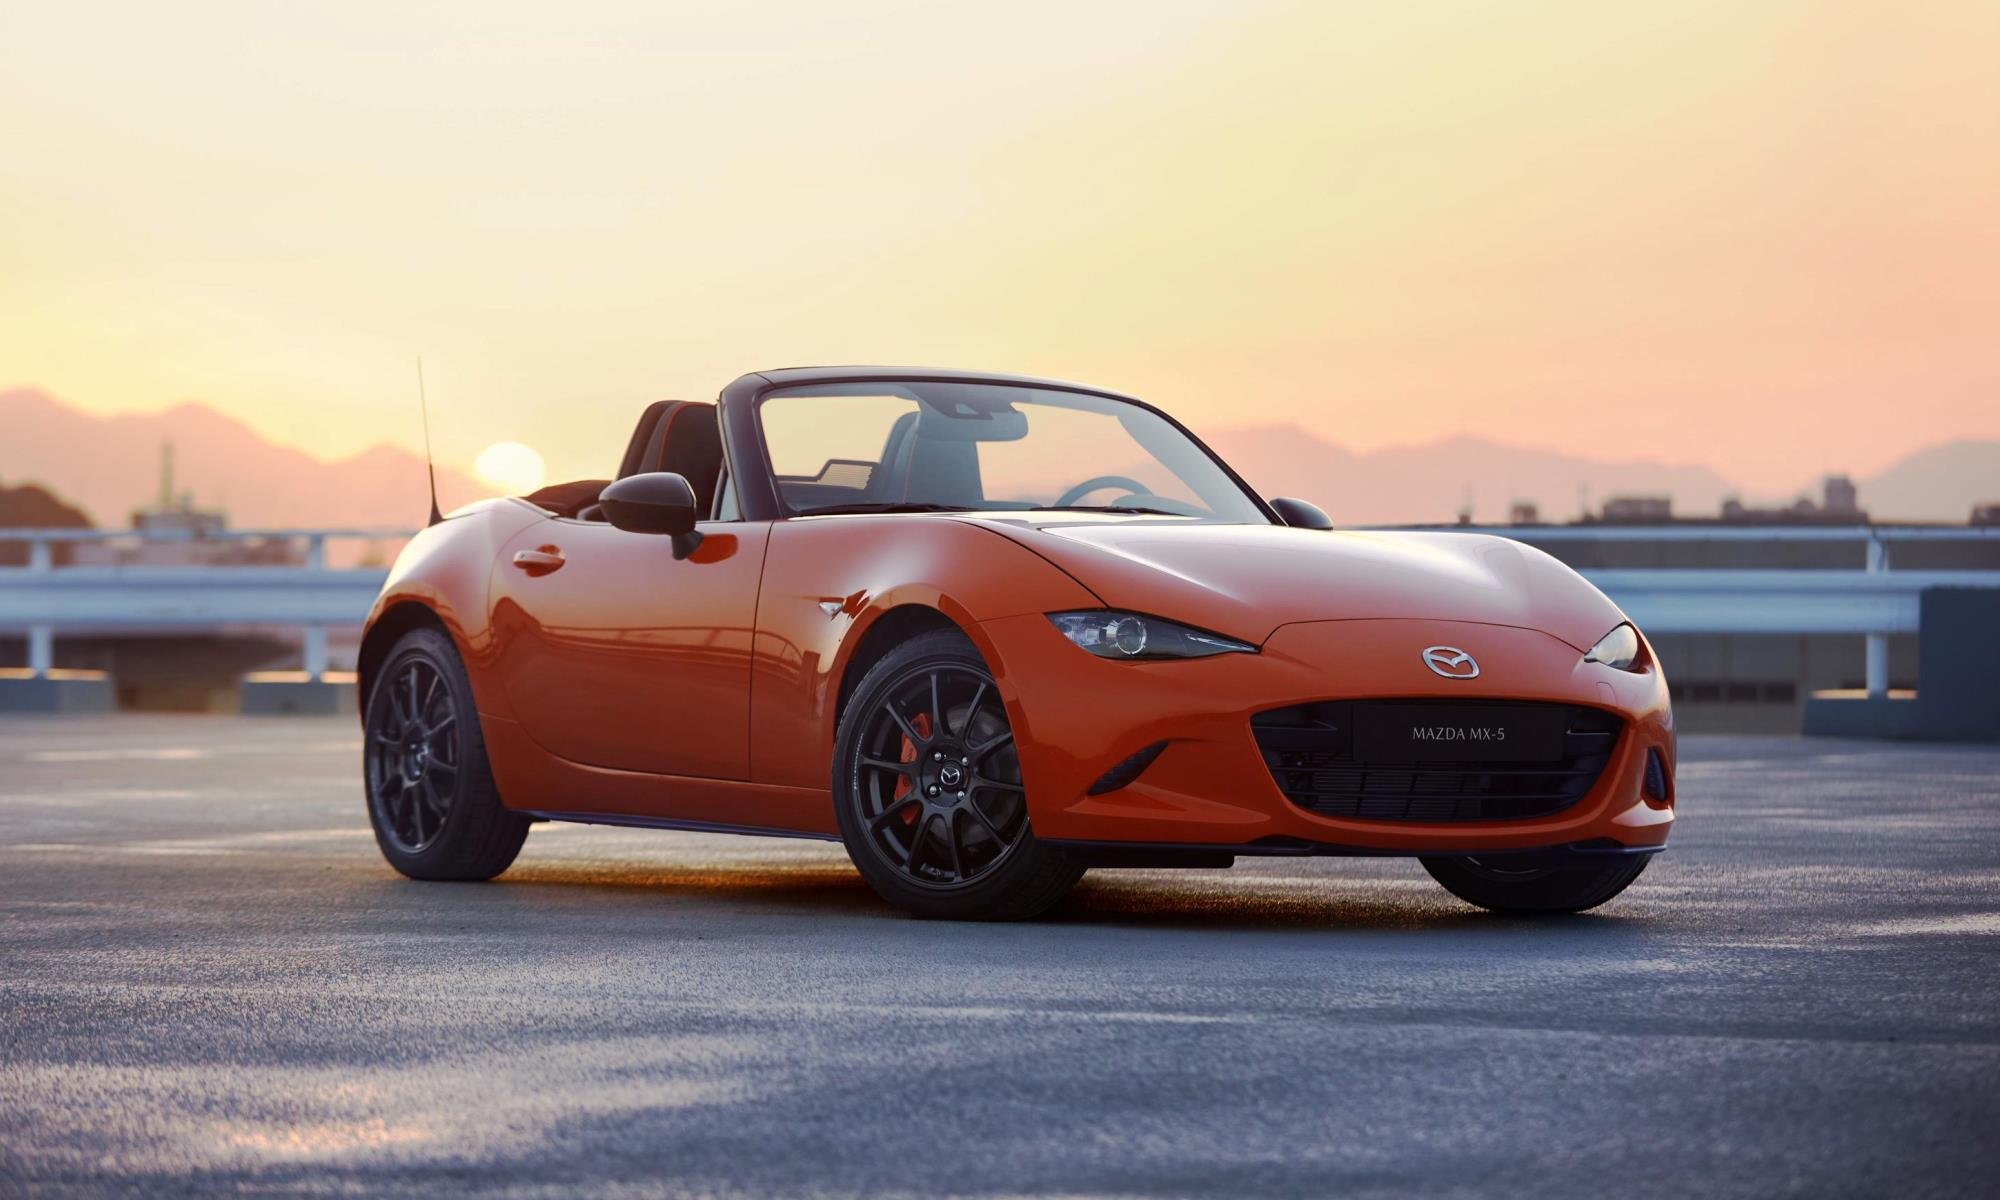 Mazda MX-5 30th Anniversary Edition roadster